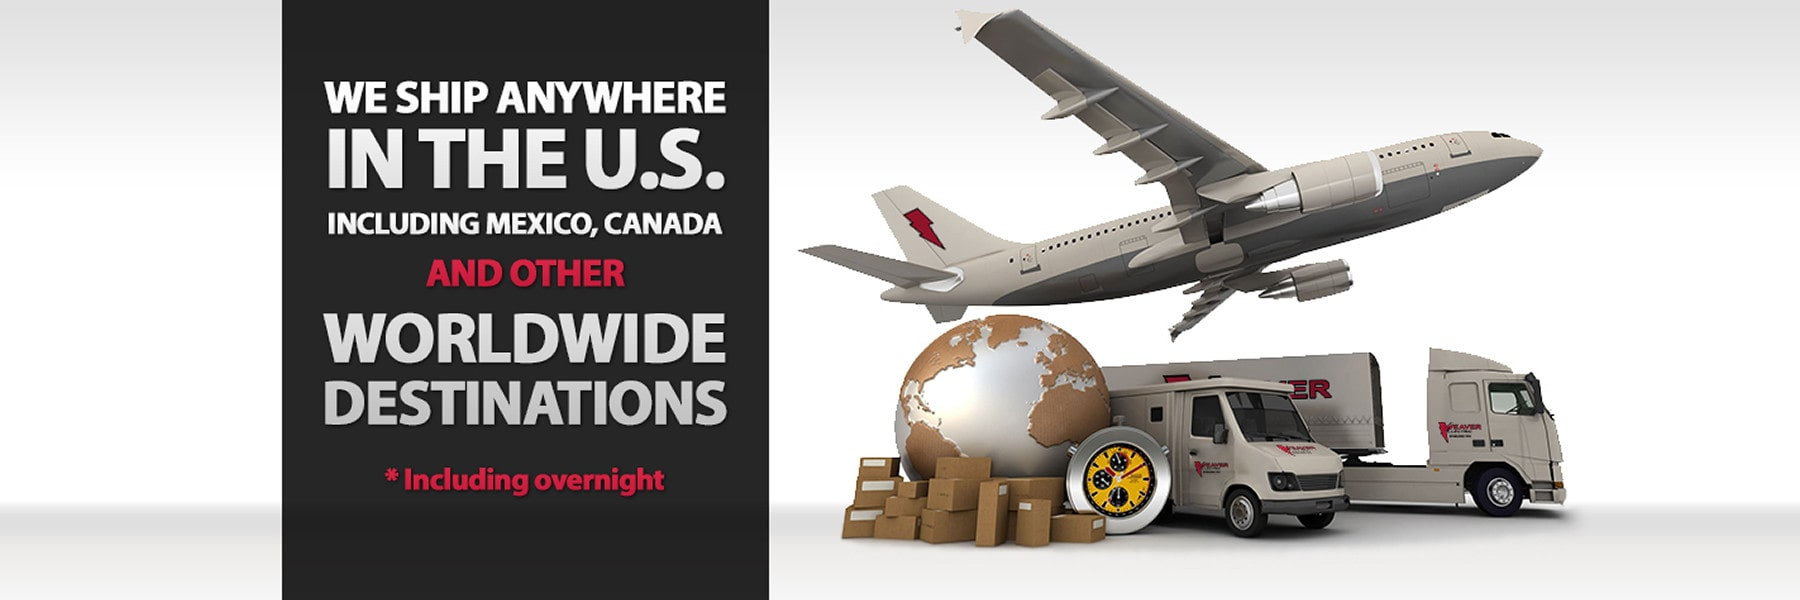 We ship anywhere in the U.S. including Mexico, Canada and other worldwide destinations. Including overnight.